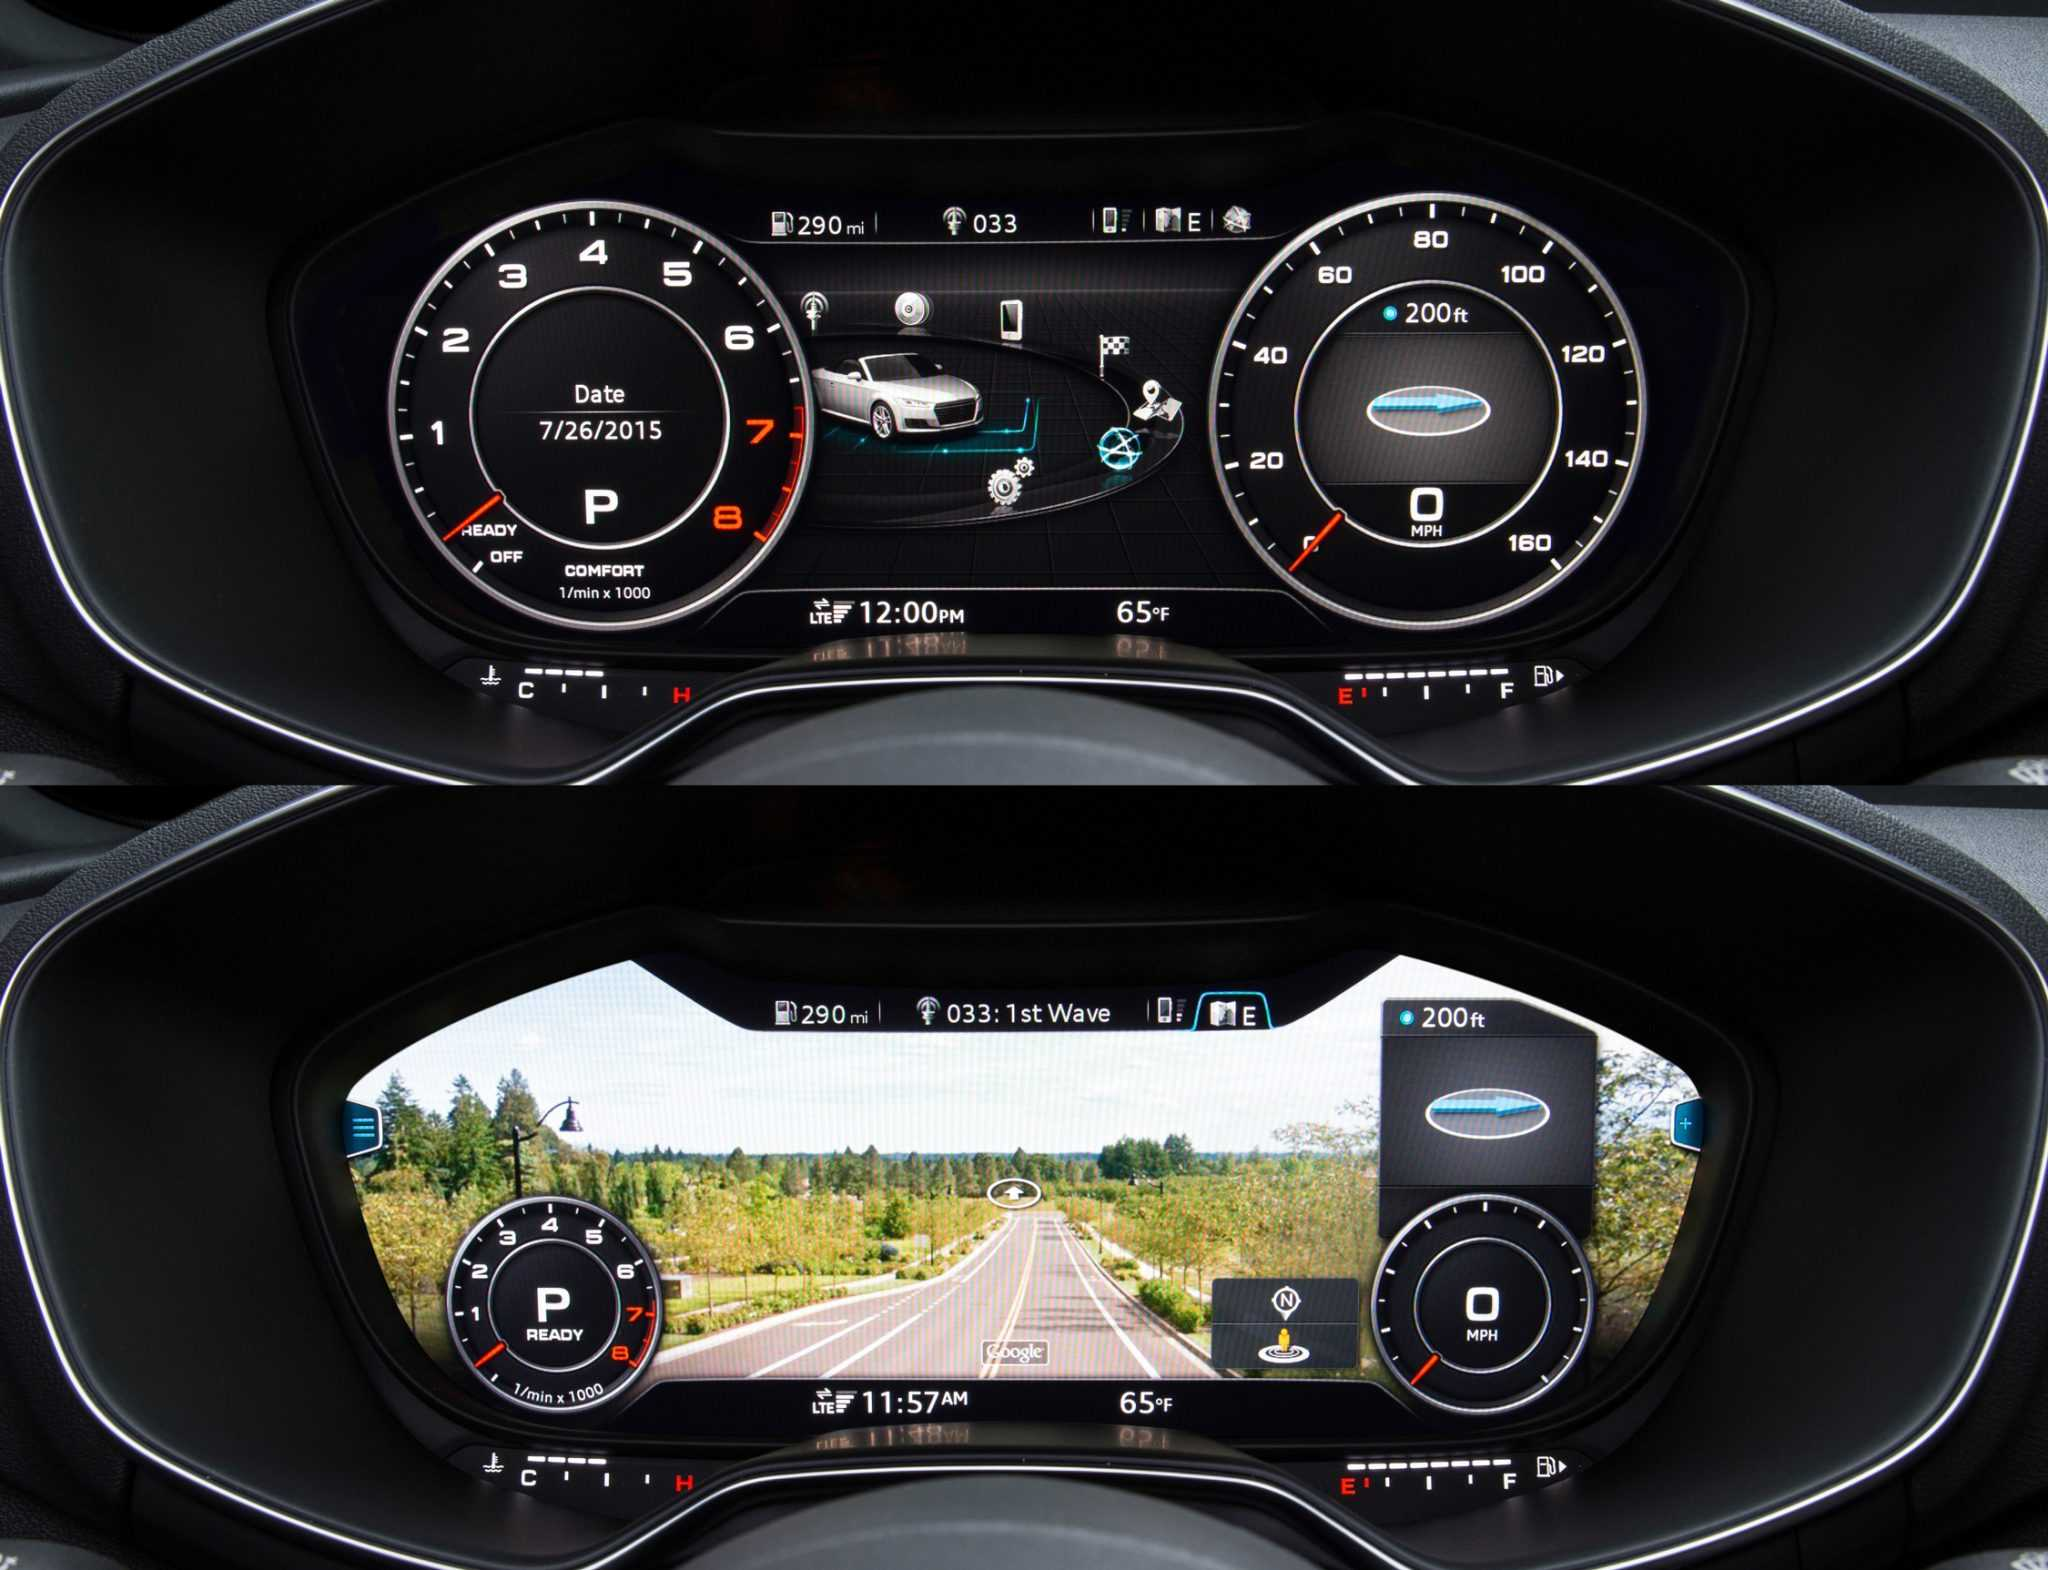 Audi Cars are Getting Big Technology Upgrades, A3 and A8 Variants Getting First Updates